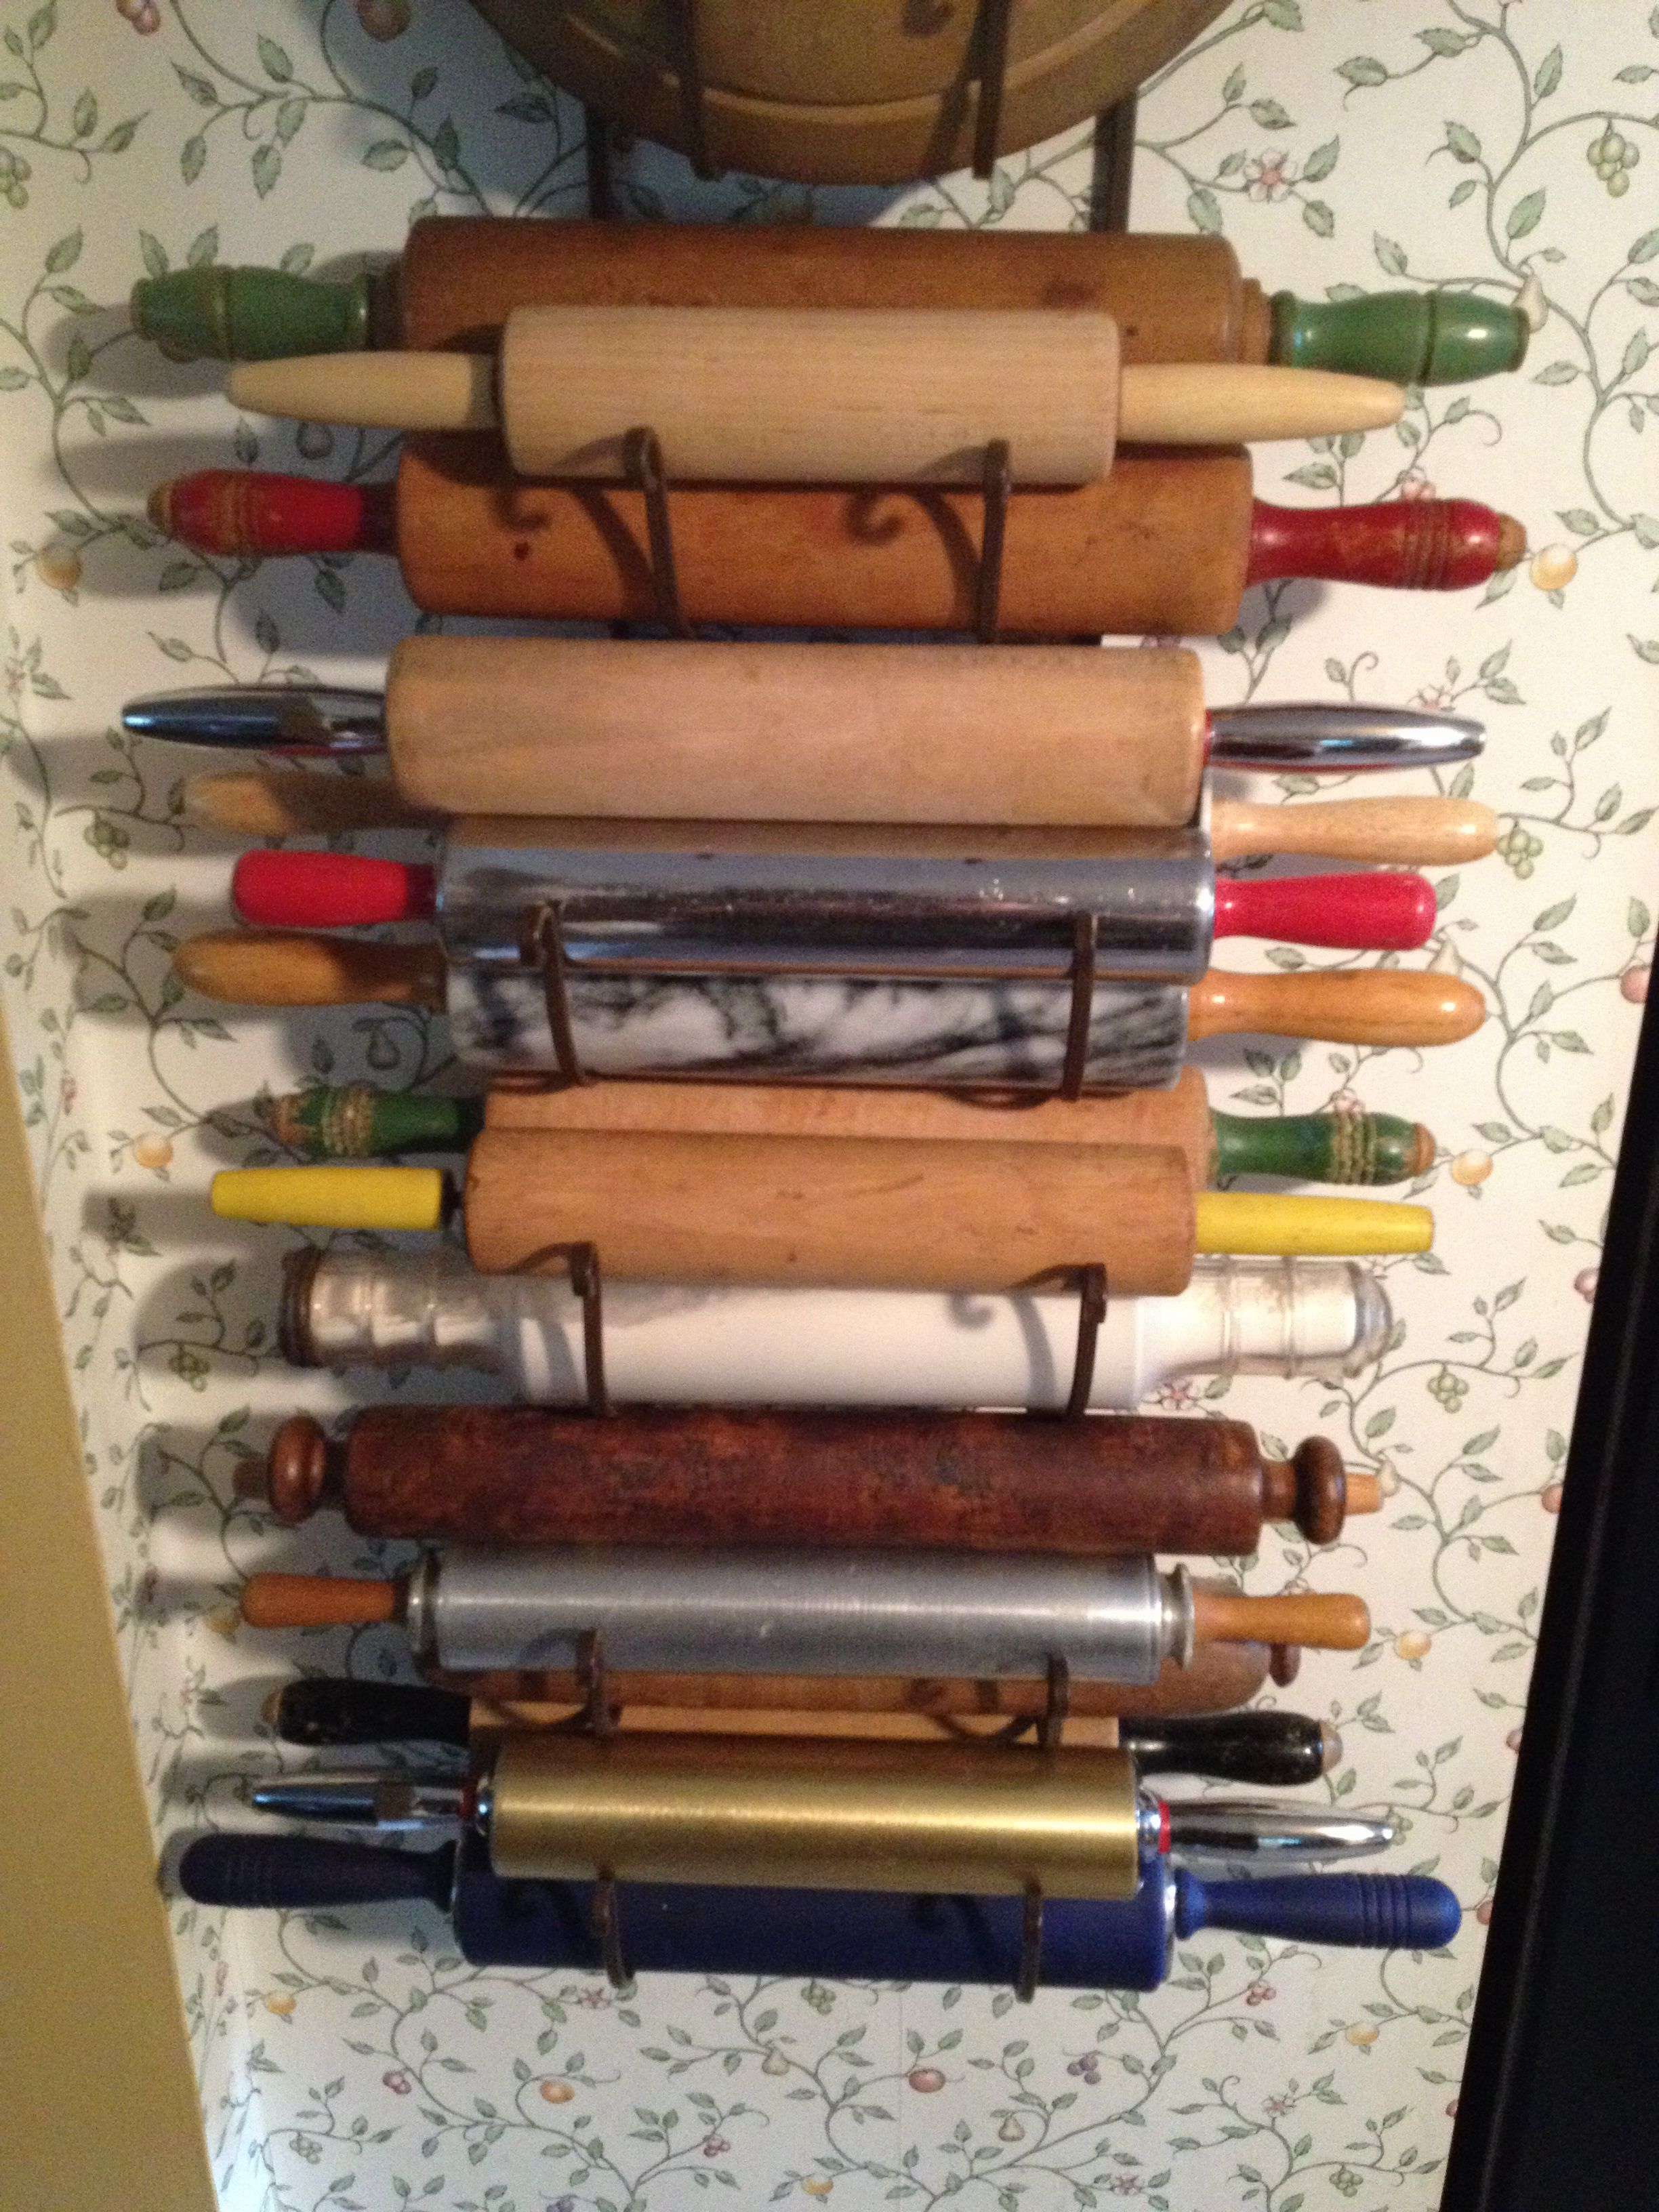 I Used A Wall Mount Towel Holder To Display My Vintage Rolling Pins Vintage Kitchen Utensils Wall Mounted Towel Holder Primitive Decorating Country